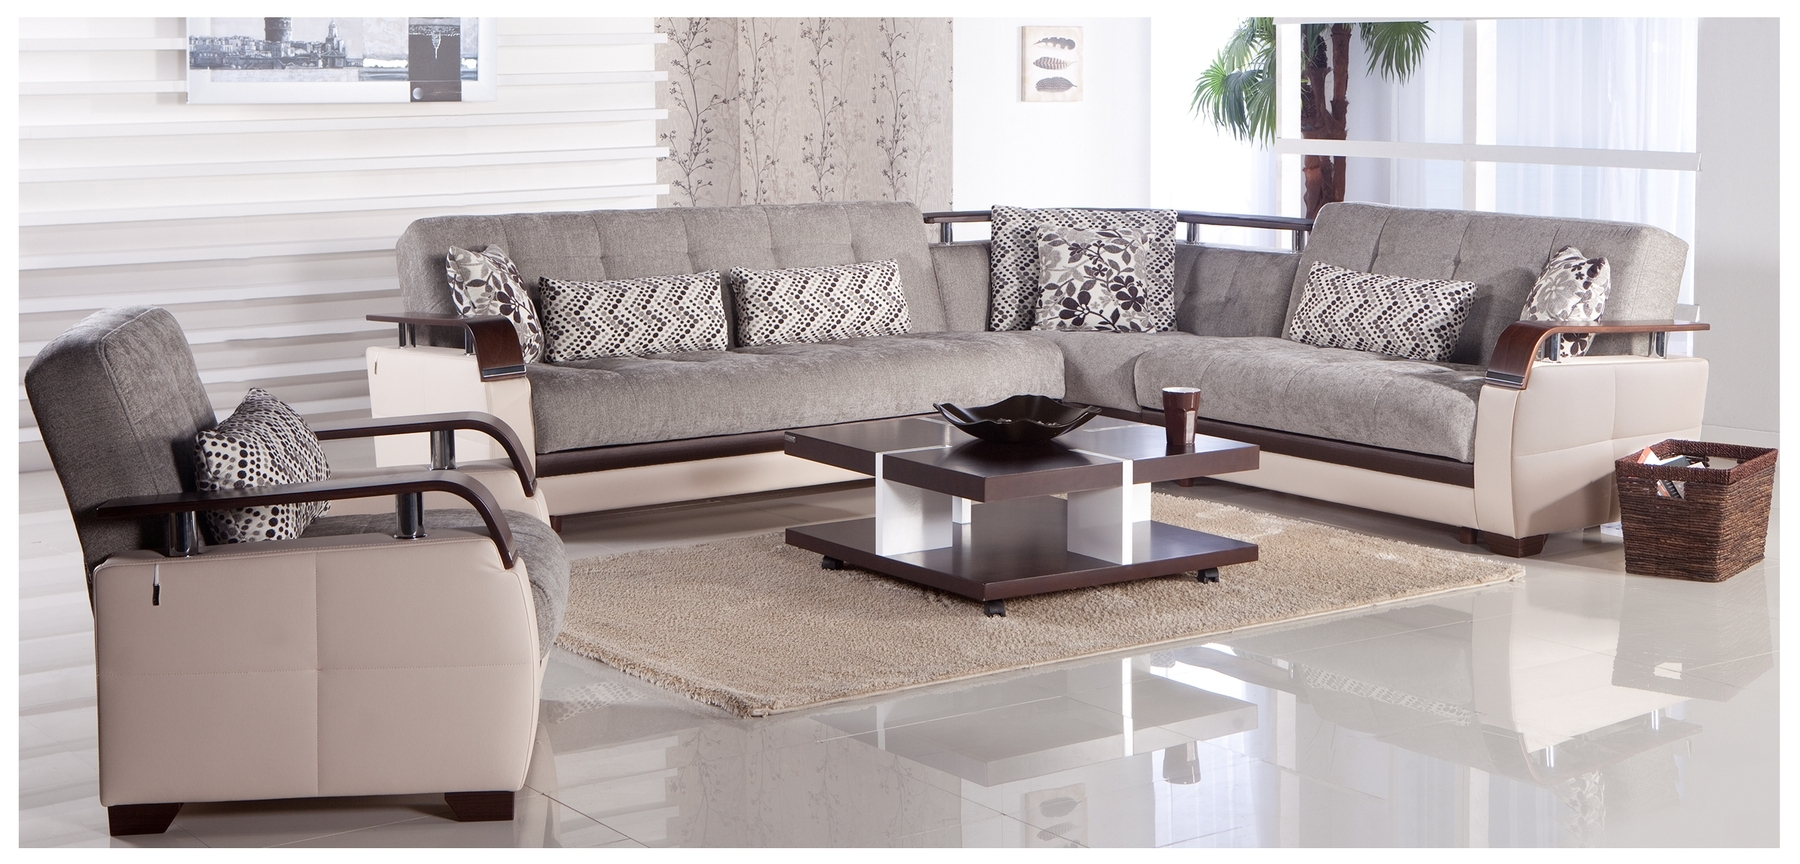 Best And Newest Modern Microfiber Sectional Sofas For Contemporary Microfiber Sectional Sofa (View 7 of 20)